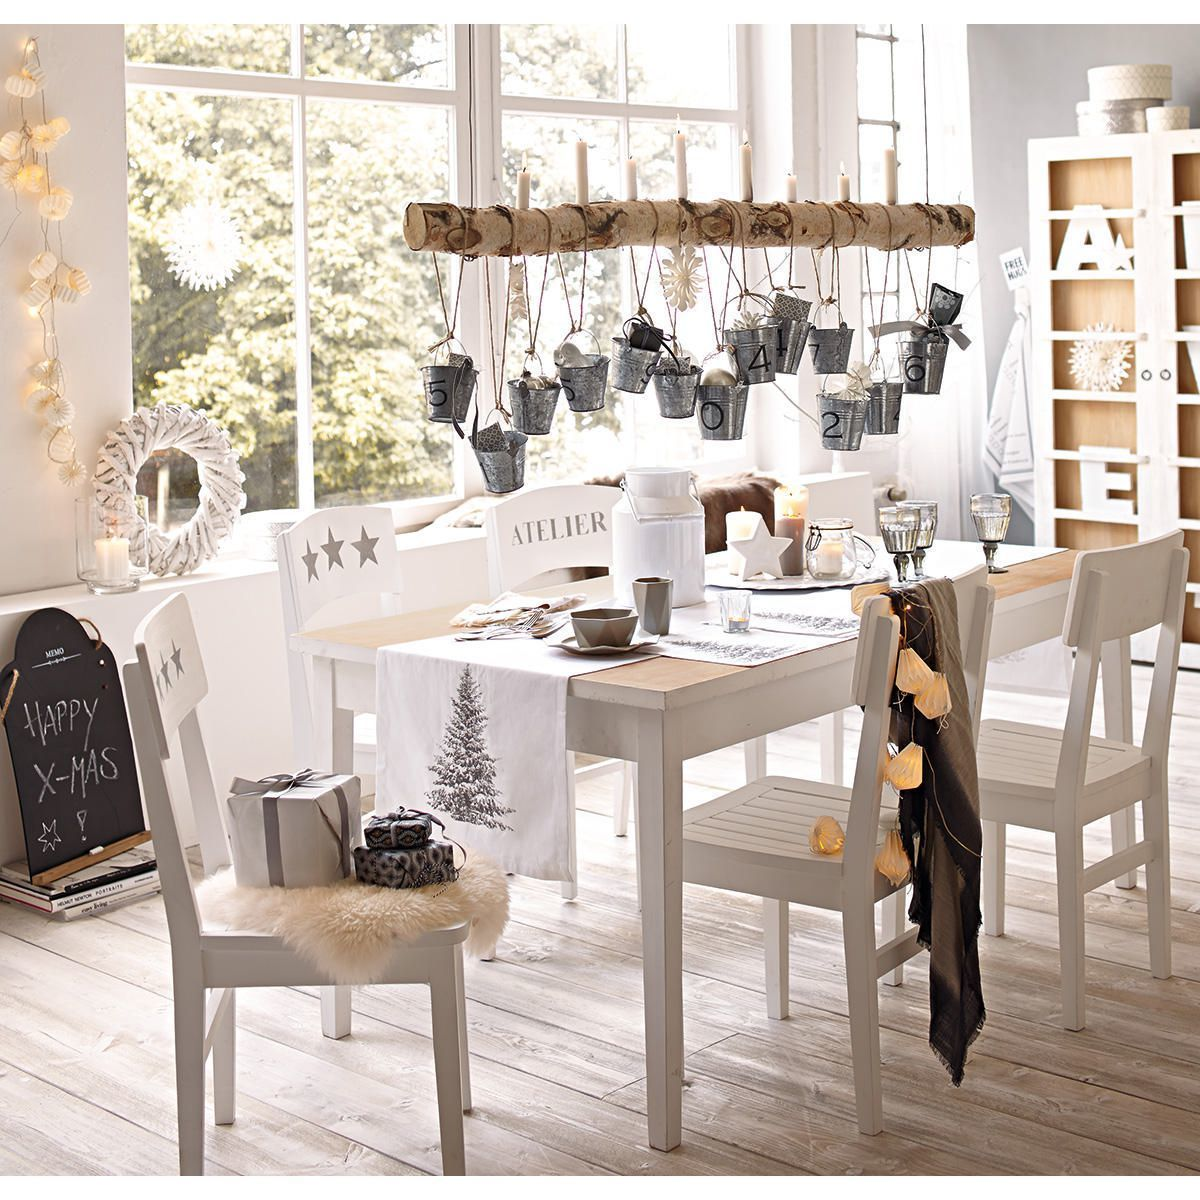 ast zum dekorieren google suche kiki pinterest weihnachten st hle und kerzen. Black Bedroom Furniture Sets. Home Design Ideas